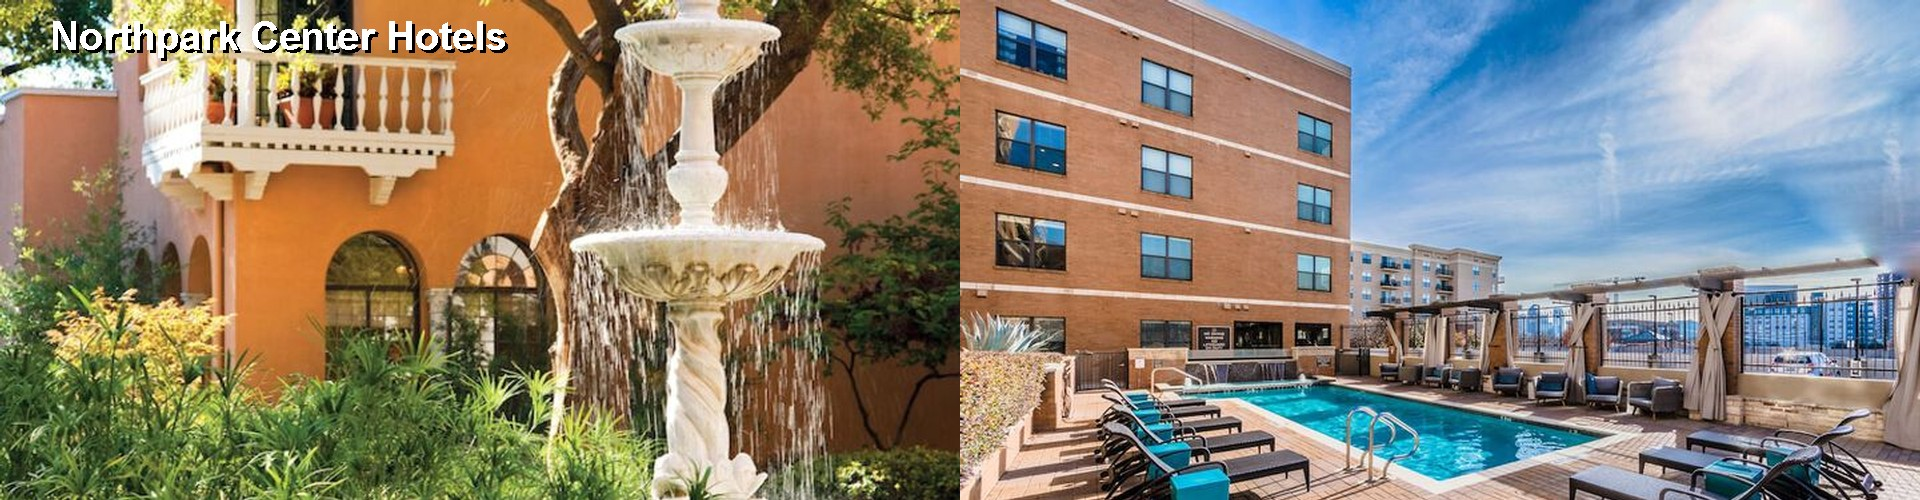 $24+ Hotels Near Northpark Center in Dallas TX